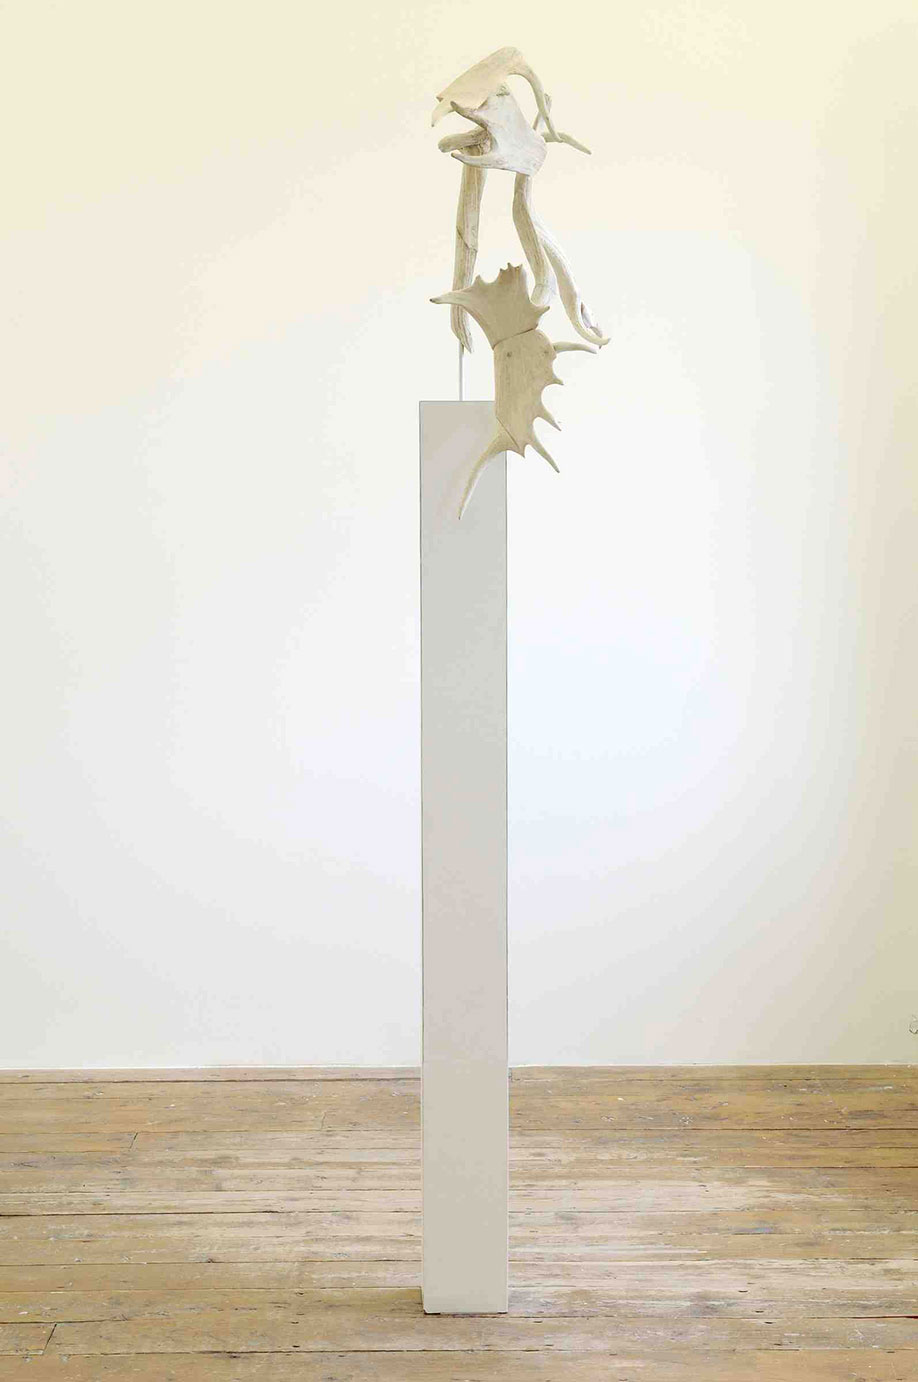 <b>Title:&nbsp;</b>Silent Heights<br /><b>Year:&nbsp;</b>2008<br /><b>Medium:&nbsp;</b>Antlers, nylon, aluminium, leather<br />